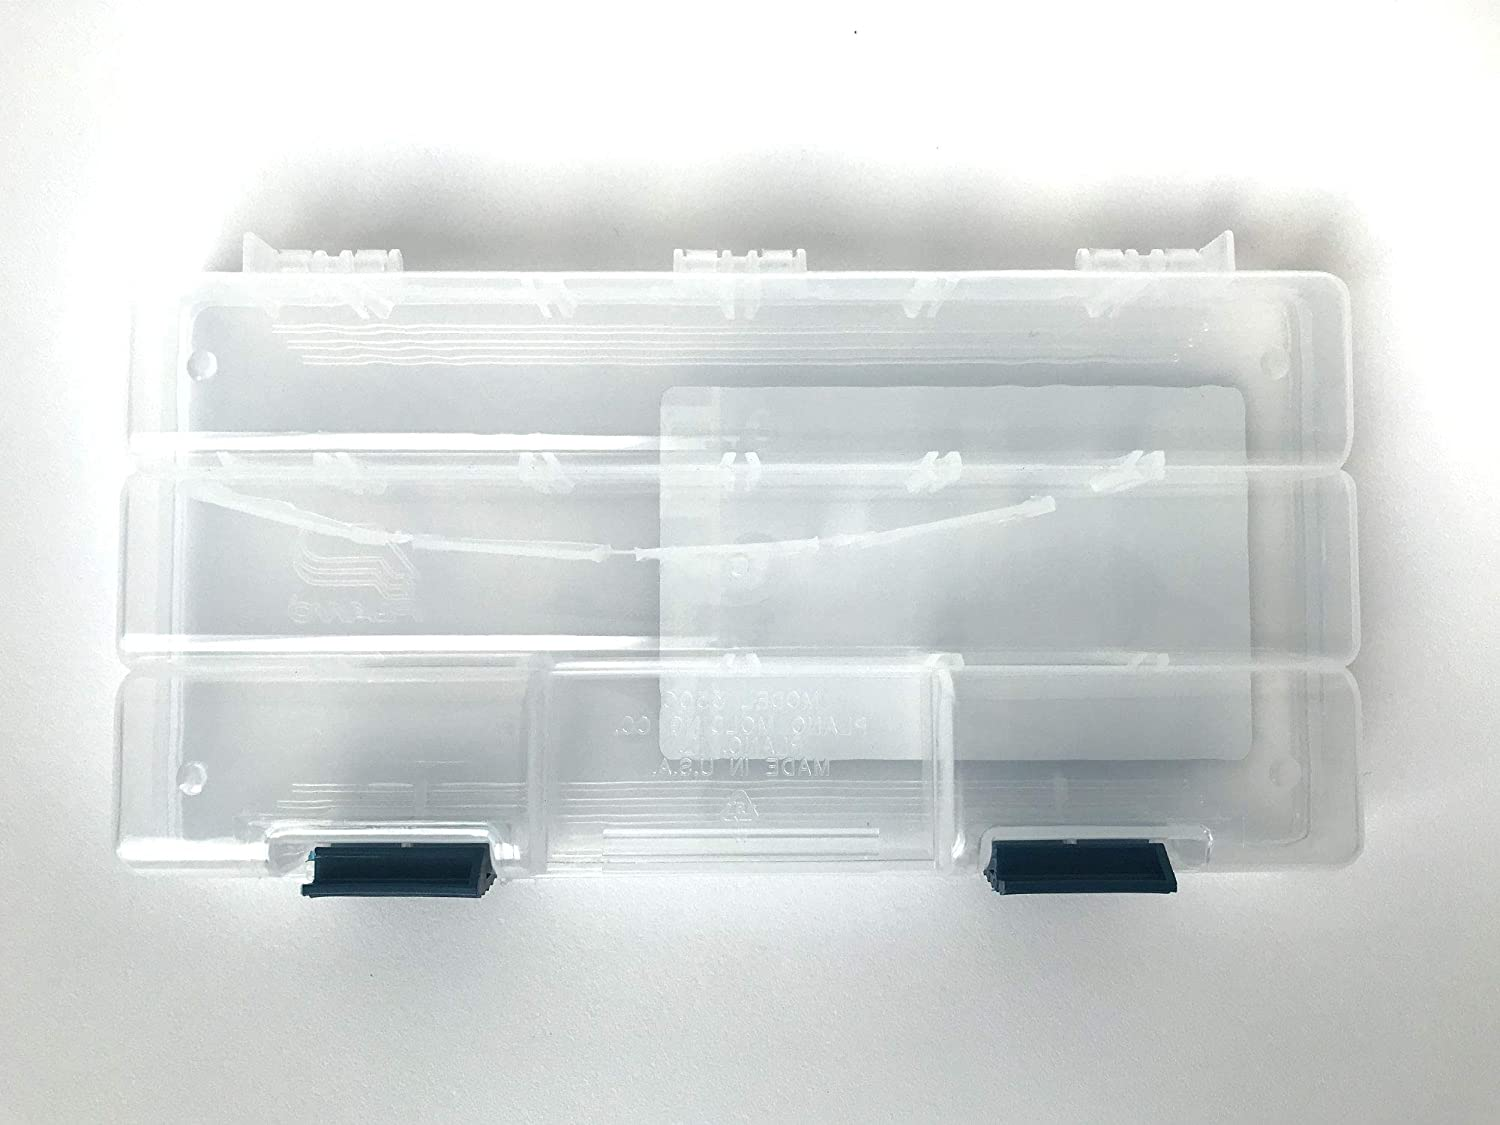 Plano Tackle Boxes,4 pack of 3500 Prolatch Stowaway Tackle Utility Boxes, Fishing Tackle Storage, blue: Sports & Outdoors